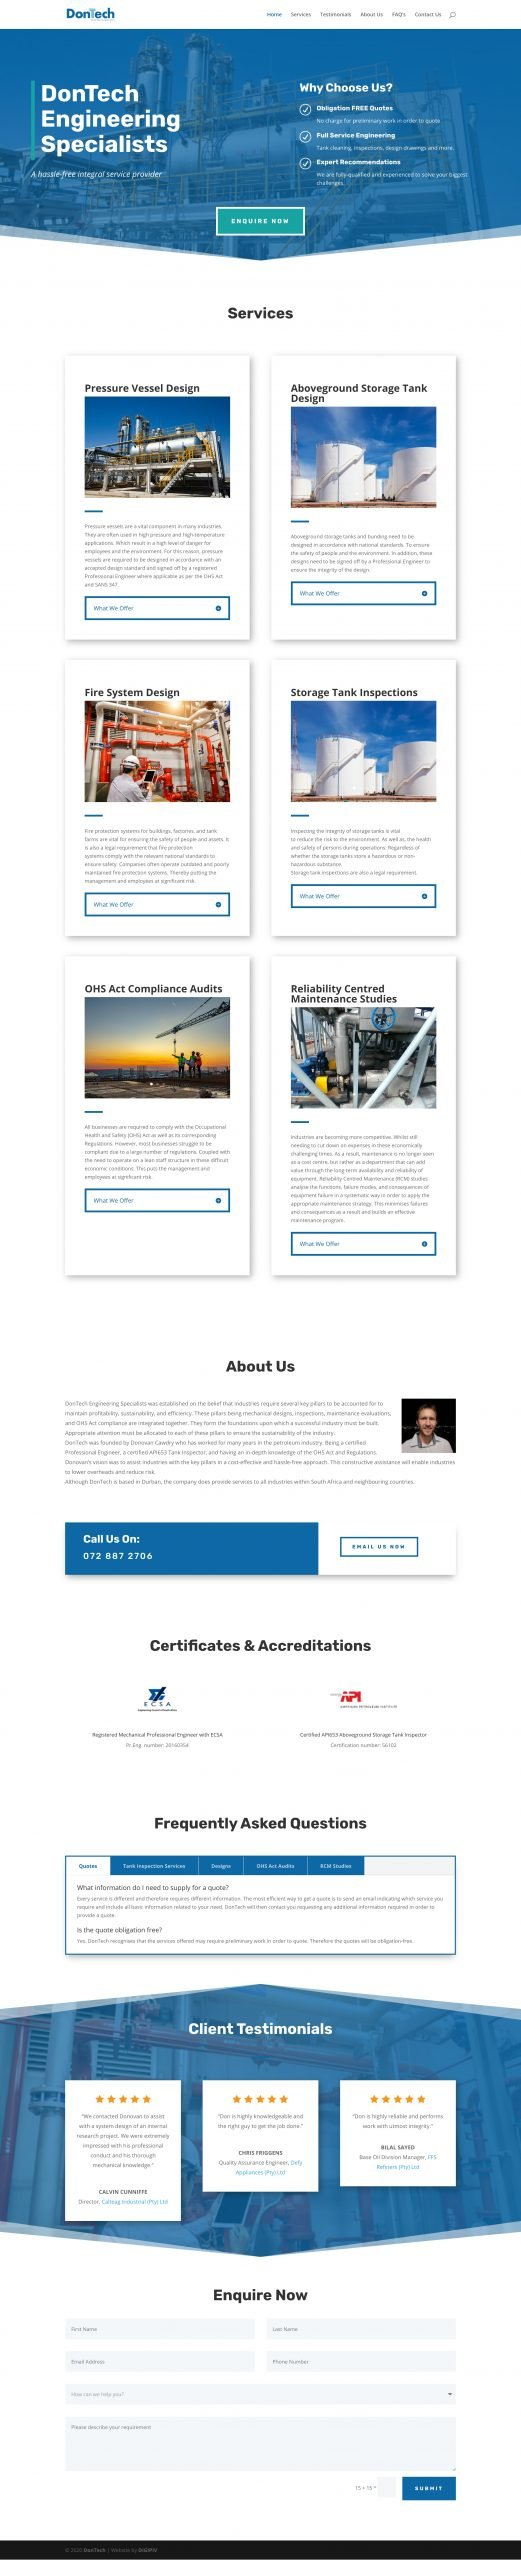 DonTech Homepage